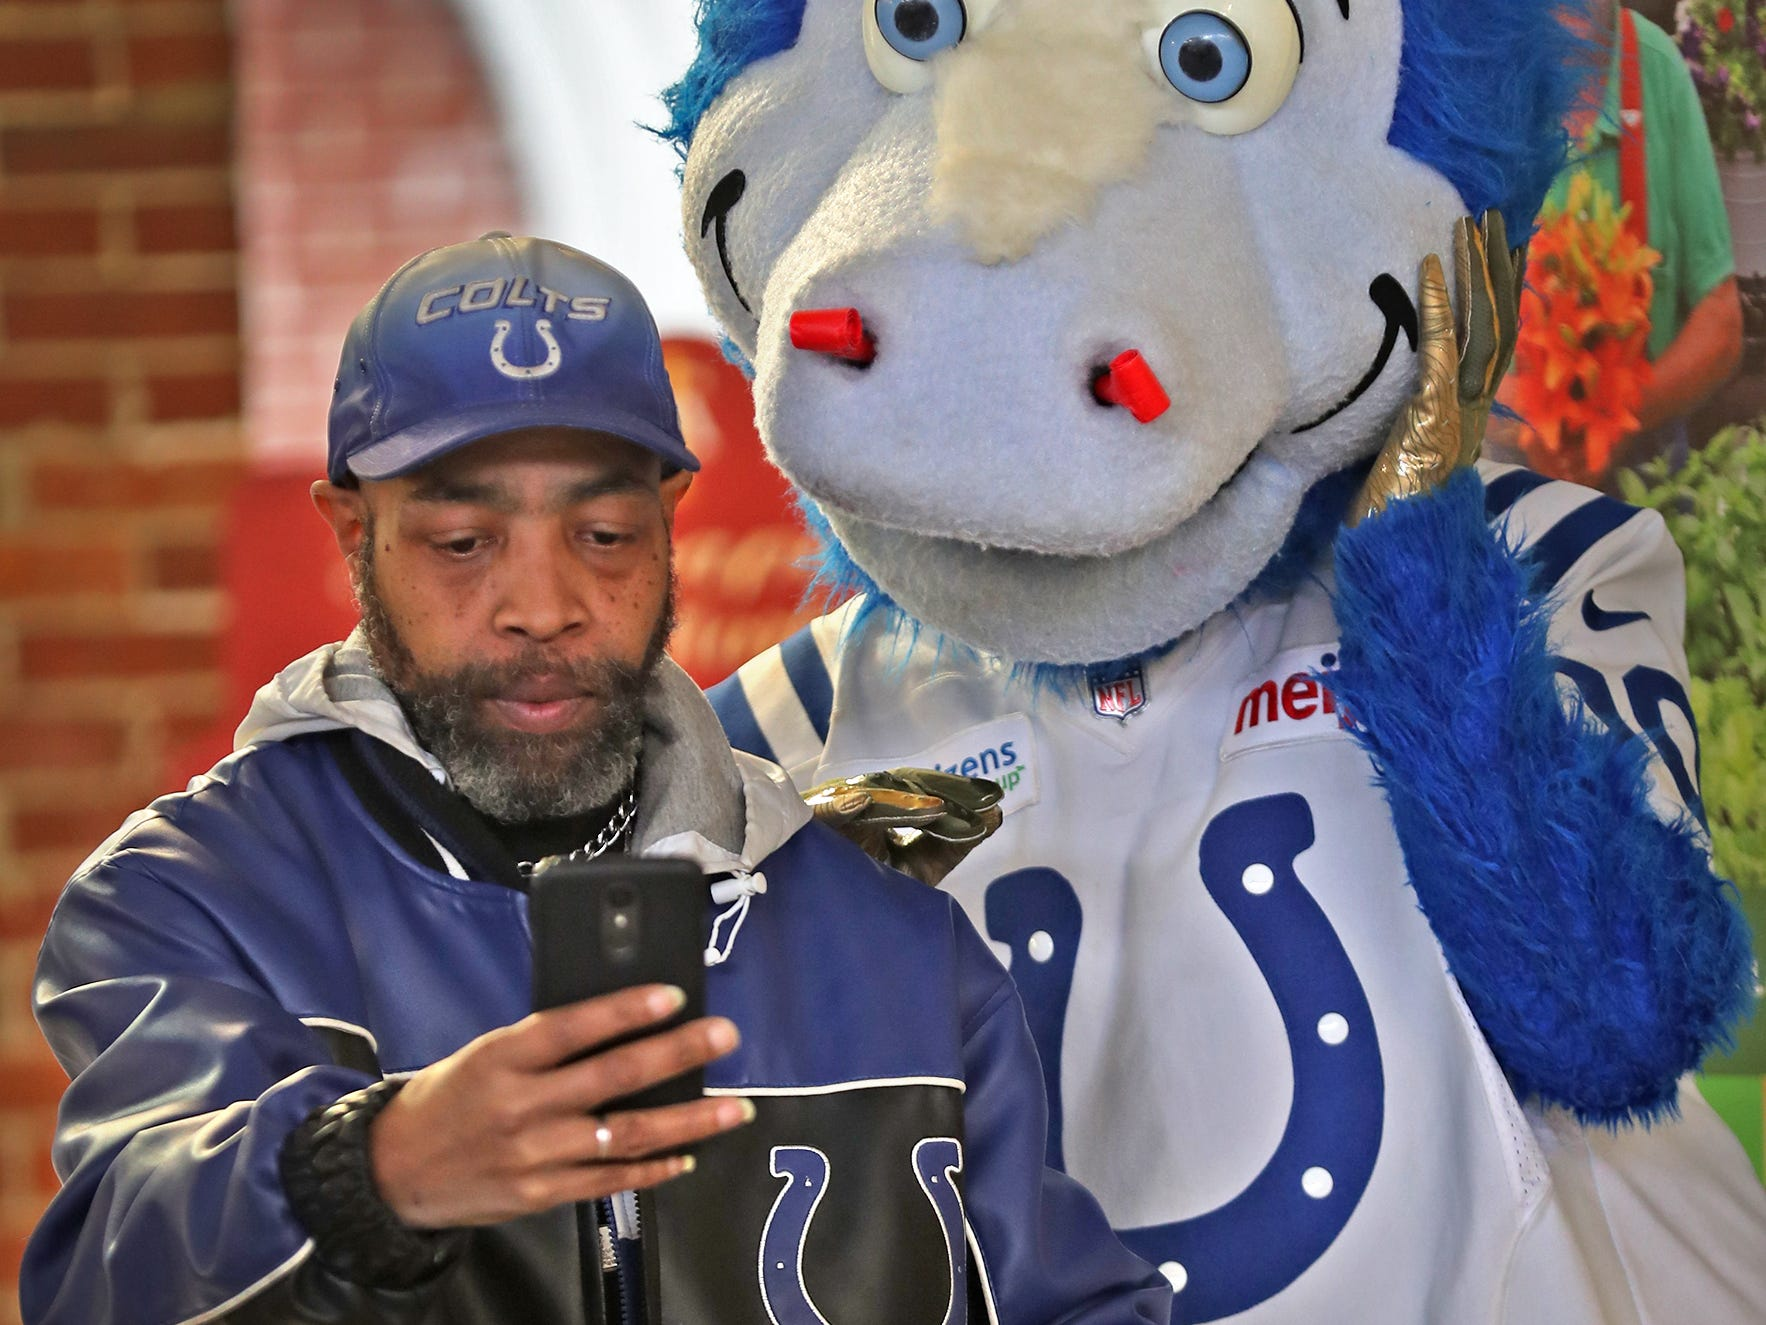 David Woods gets a selfie with Colts mascot Blue at the City Market.  Fans had the opportunity to sign a 1-0 banner for the Colts at City Market, Thursday, Jan. 10, 2019.  The banner will be displayed for the team to see at the airport as they head off to their Kansas City playoff game.